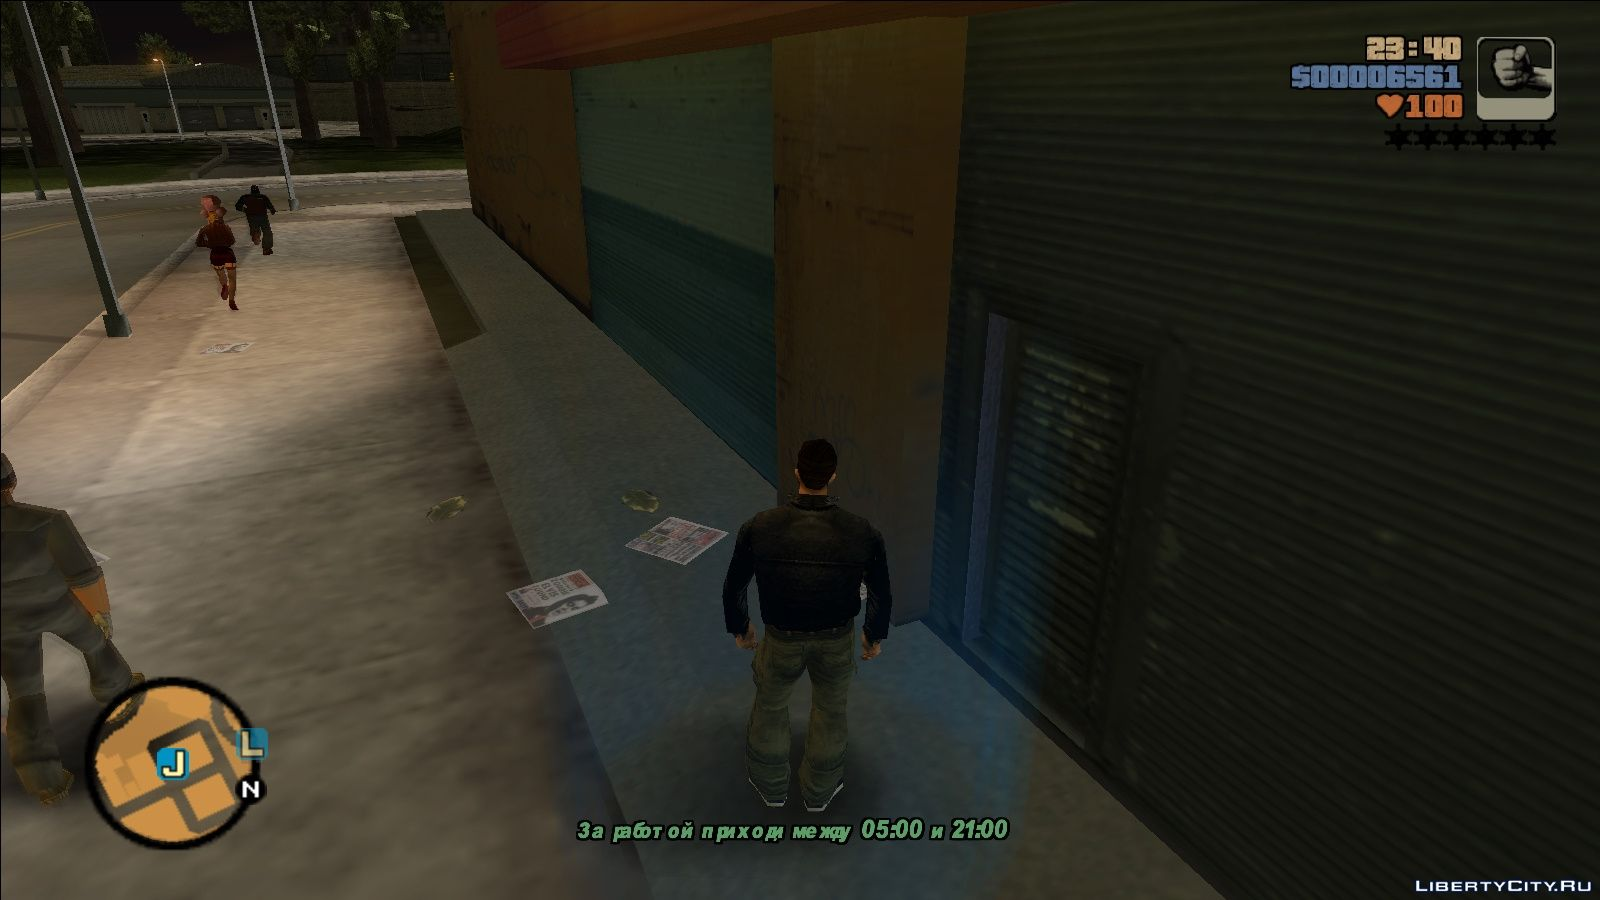 Universal Widescreen Patcher (Need for Speed: Underground 2 > Tools